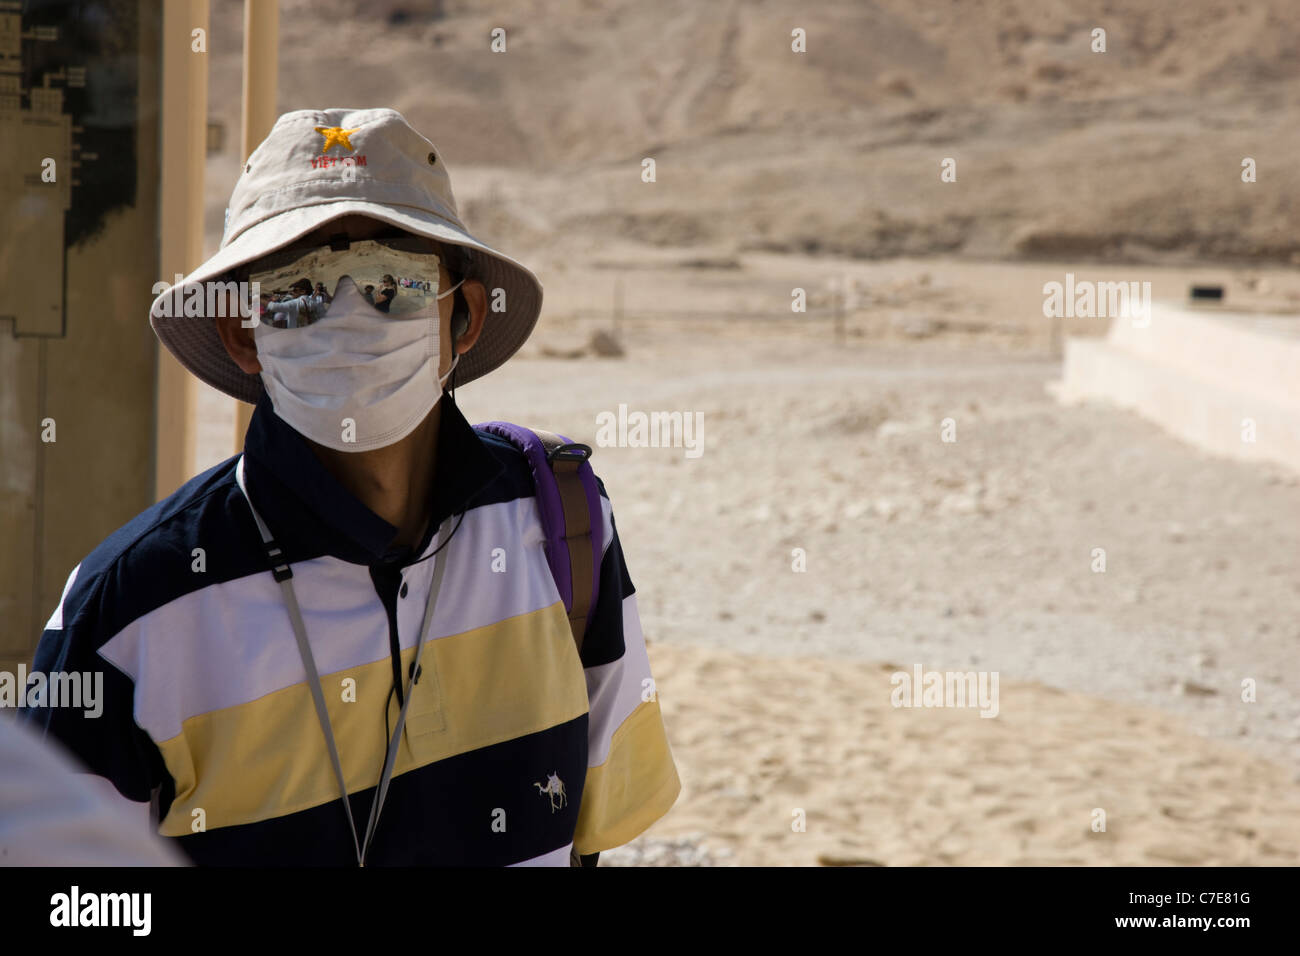 A Japanese tourist with face mask at the temple of Hatshepsut, Luxor, Egypt Stock Photo